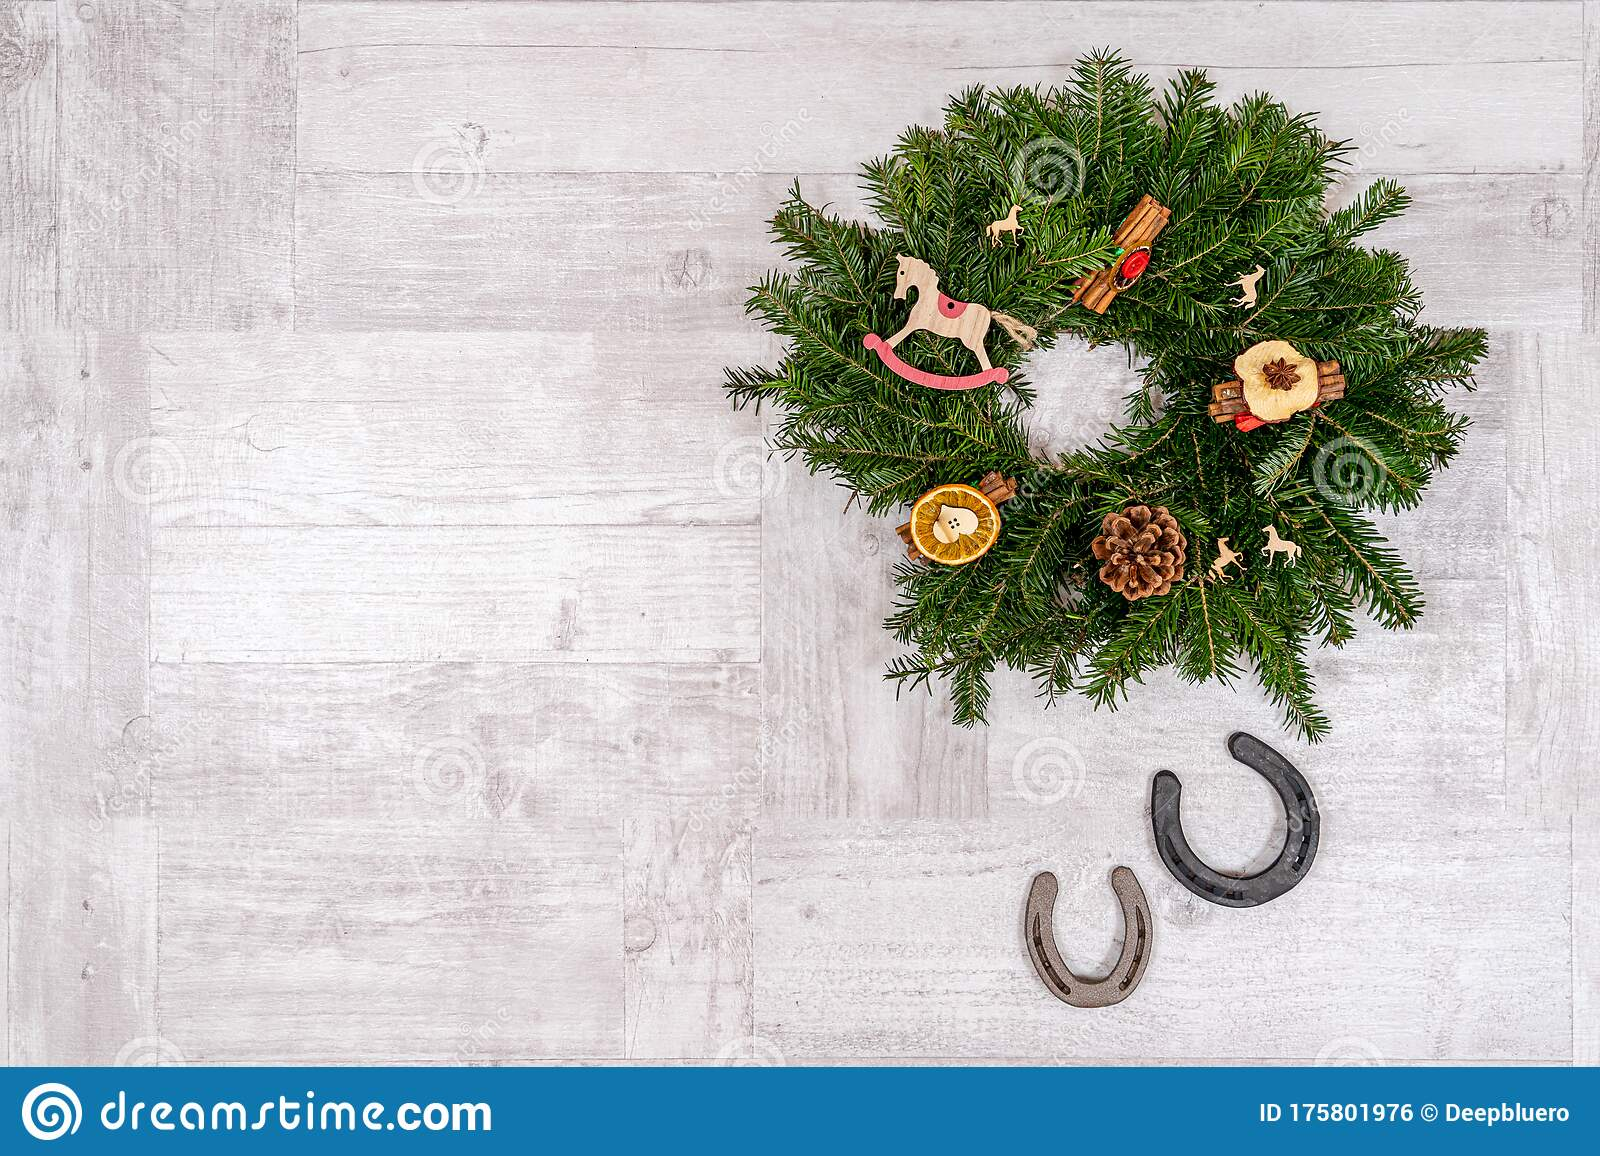 Postcard With Horseshoe And Horse Christmas Decorations On A Wooden Background Stock Photo Image Of Riding Seasonal 175801976